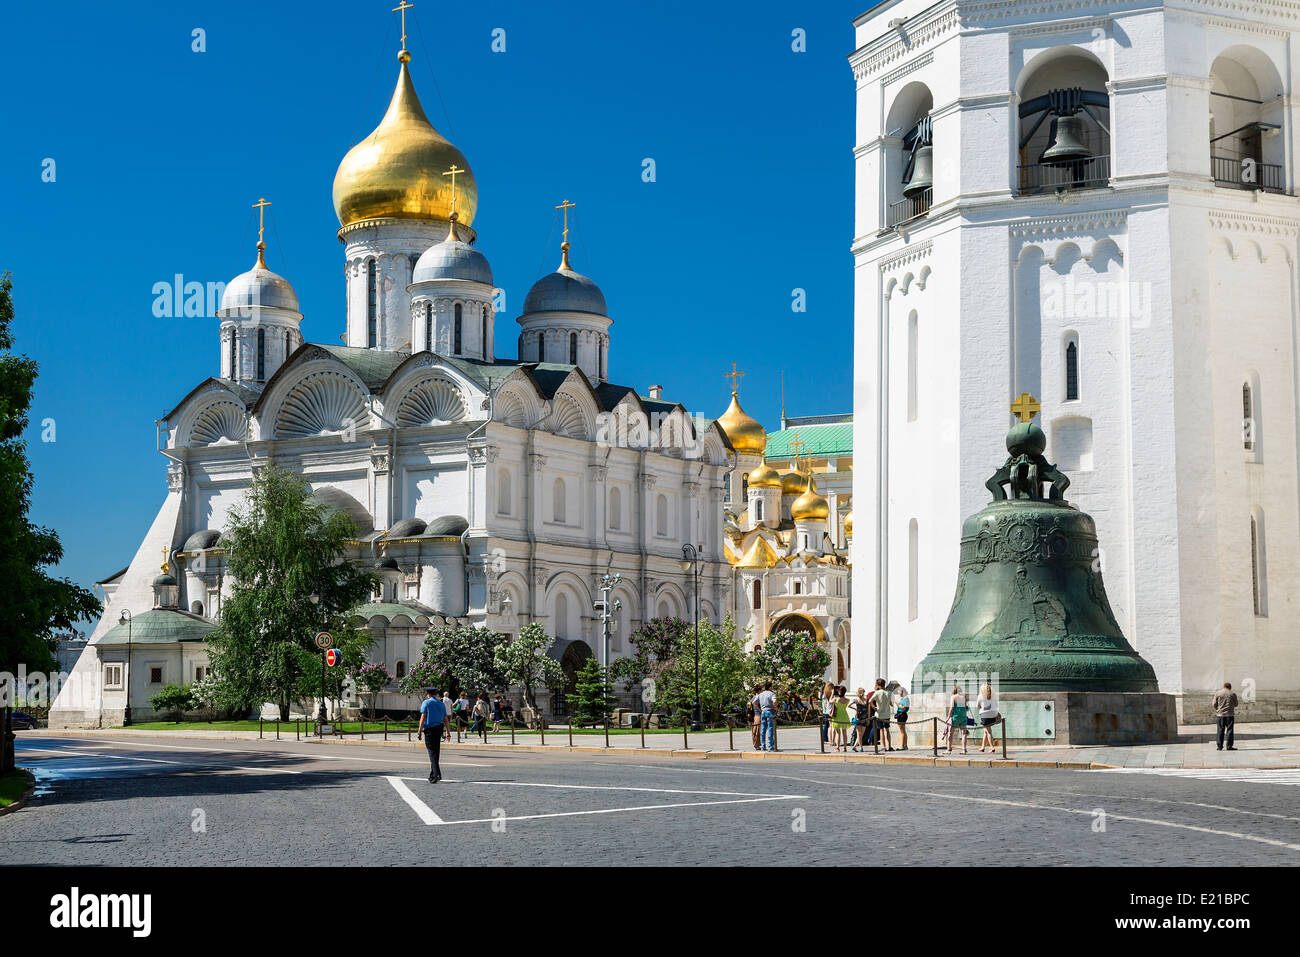 Moscow, Kremlin, Tsar Bell and the Archangel's Cathedral - Stock Image